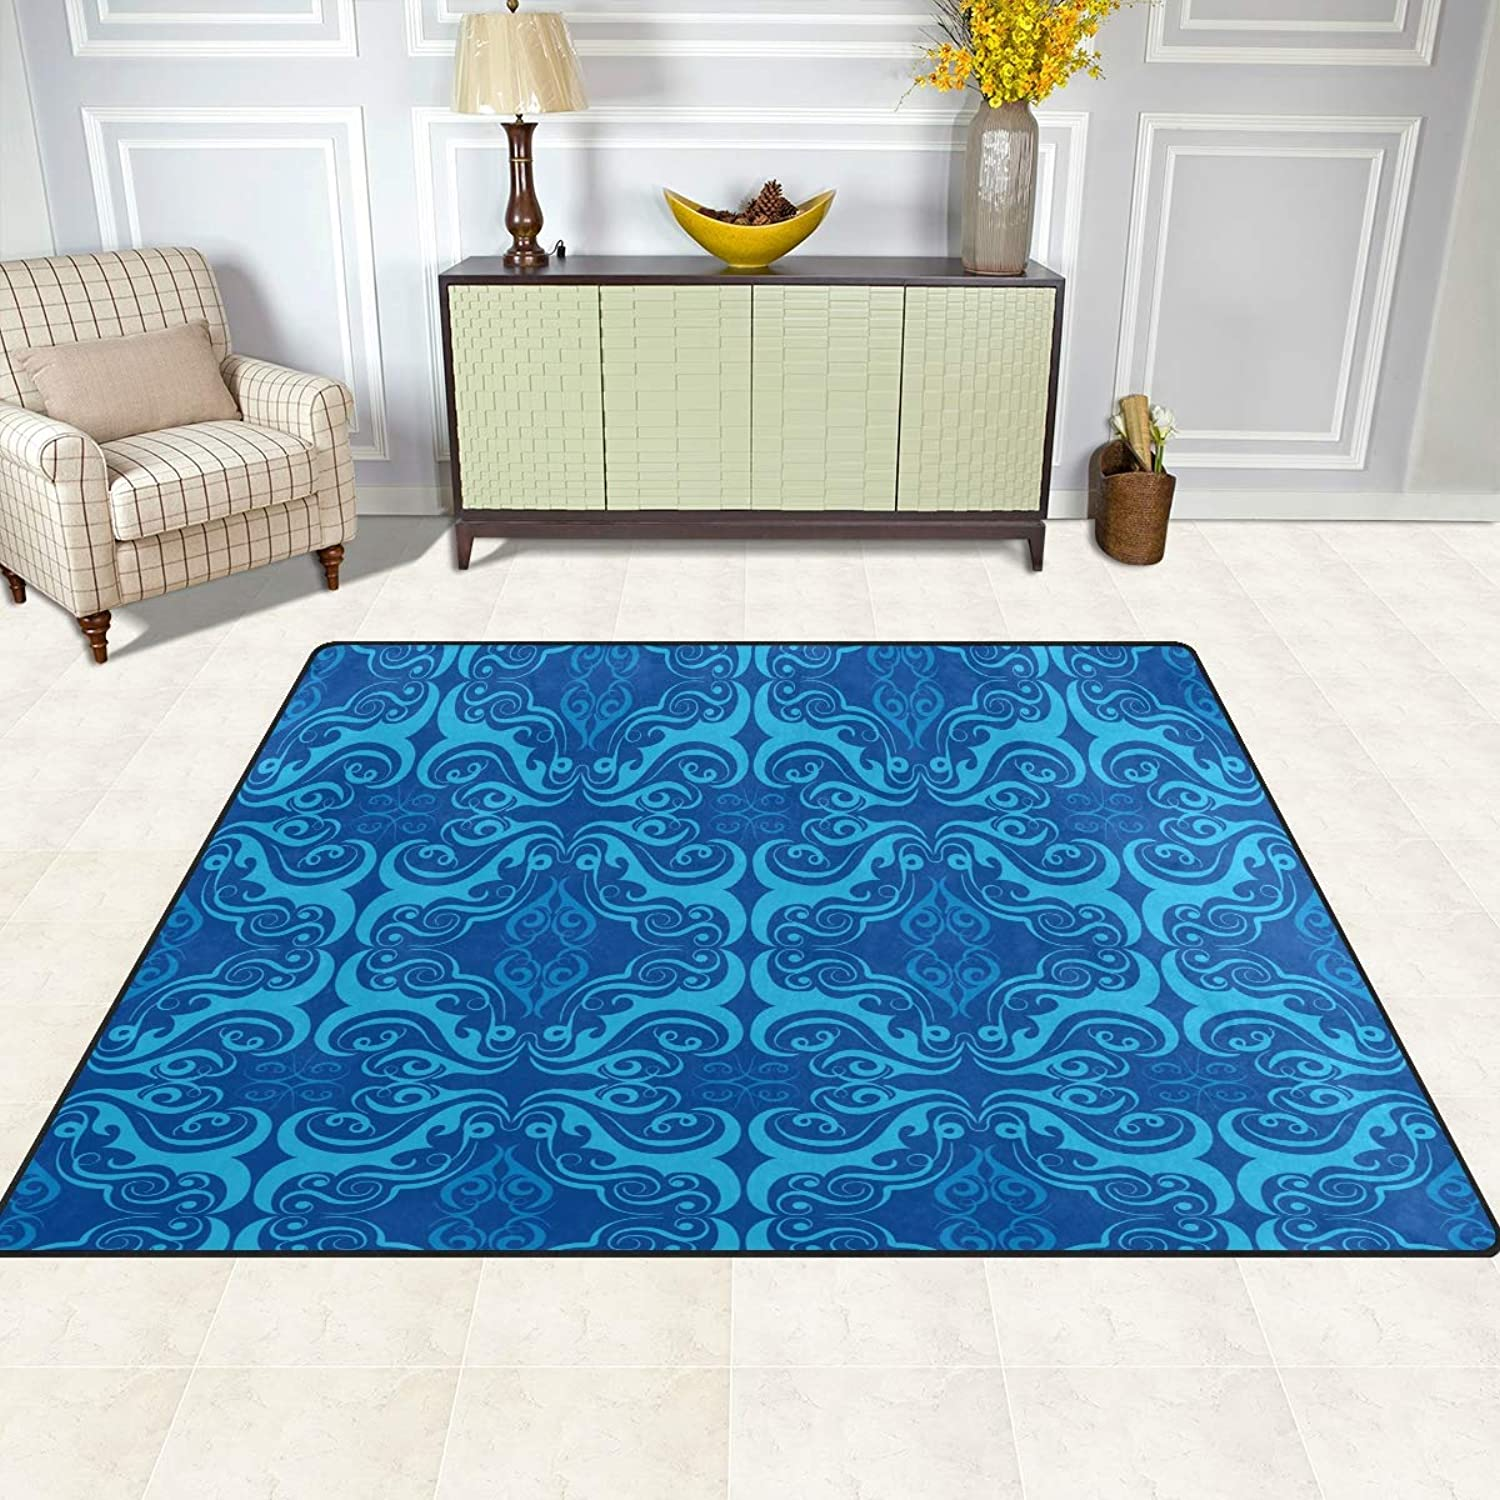 FAJRO European Floral bluee Background Rugs for entryway Doormat Area Rug Multipattern Door Mat shoes Scraper Home Dec Anti-Slip Indoor Outdoor